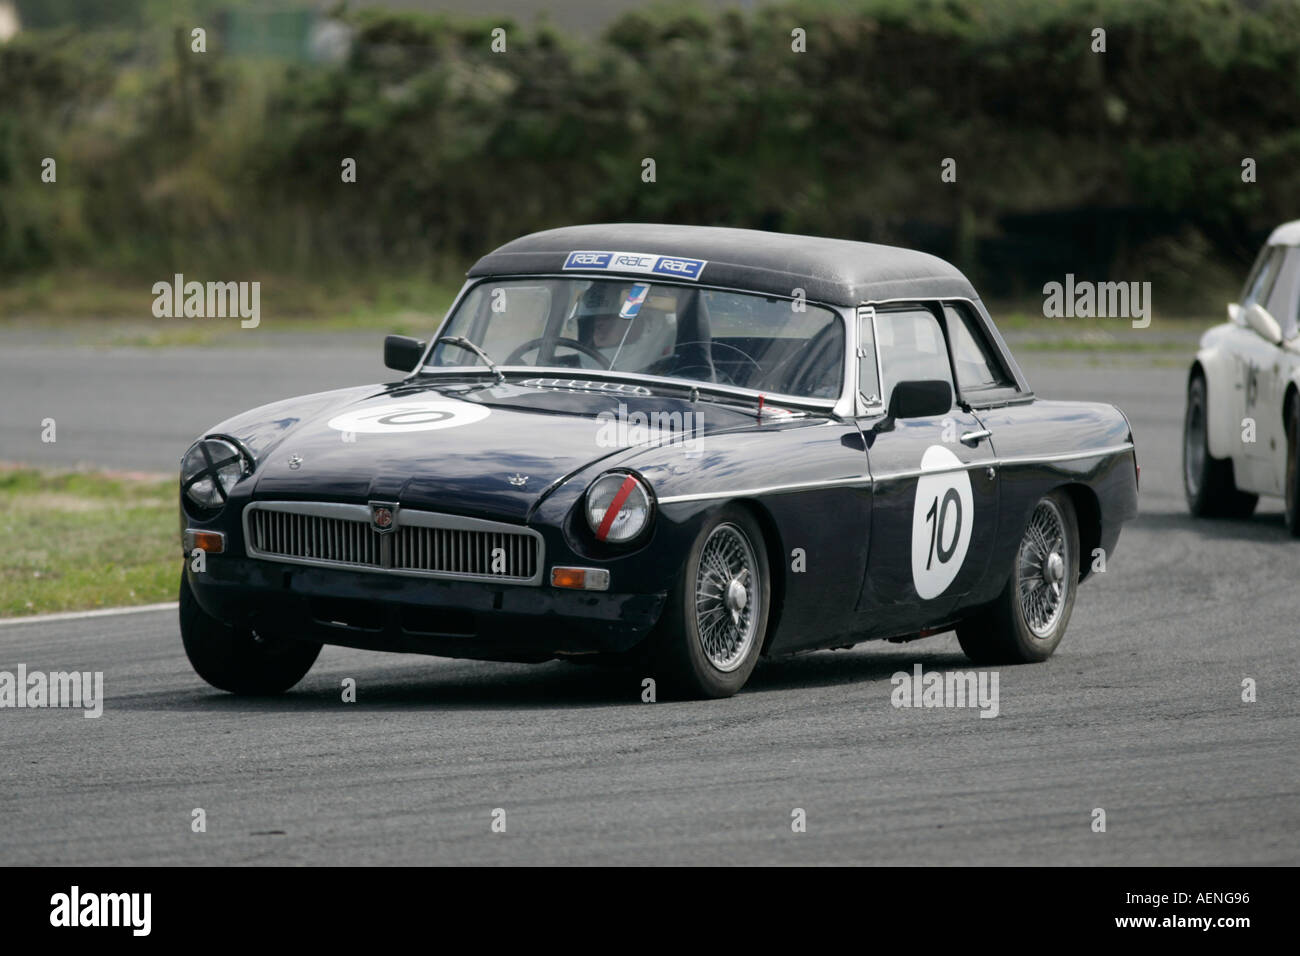 Mgb Race Stock Photos & Mgb Race Stock Images - Alamy